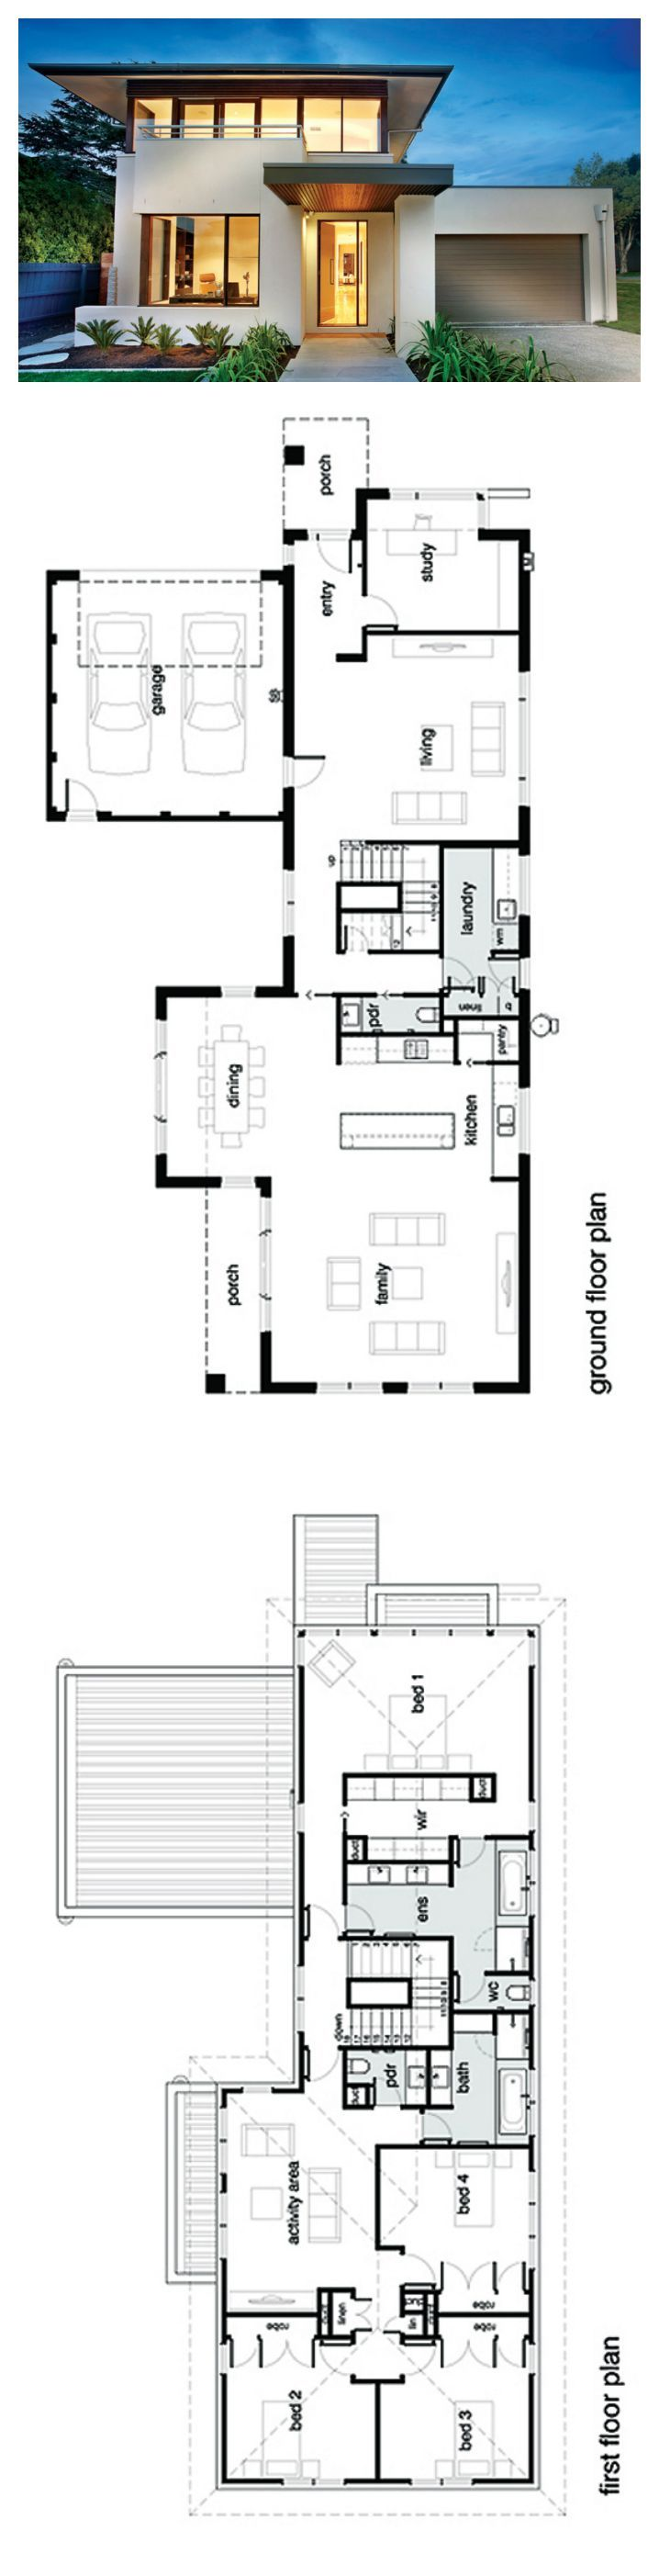 Best 25 modern house plans ideas on pinterest modern for Modern home design floor plans